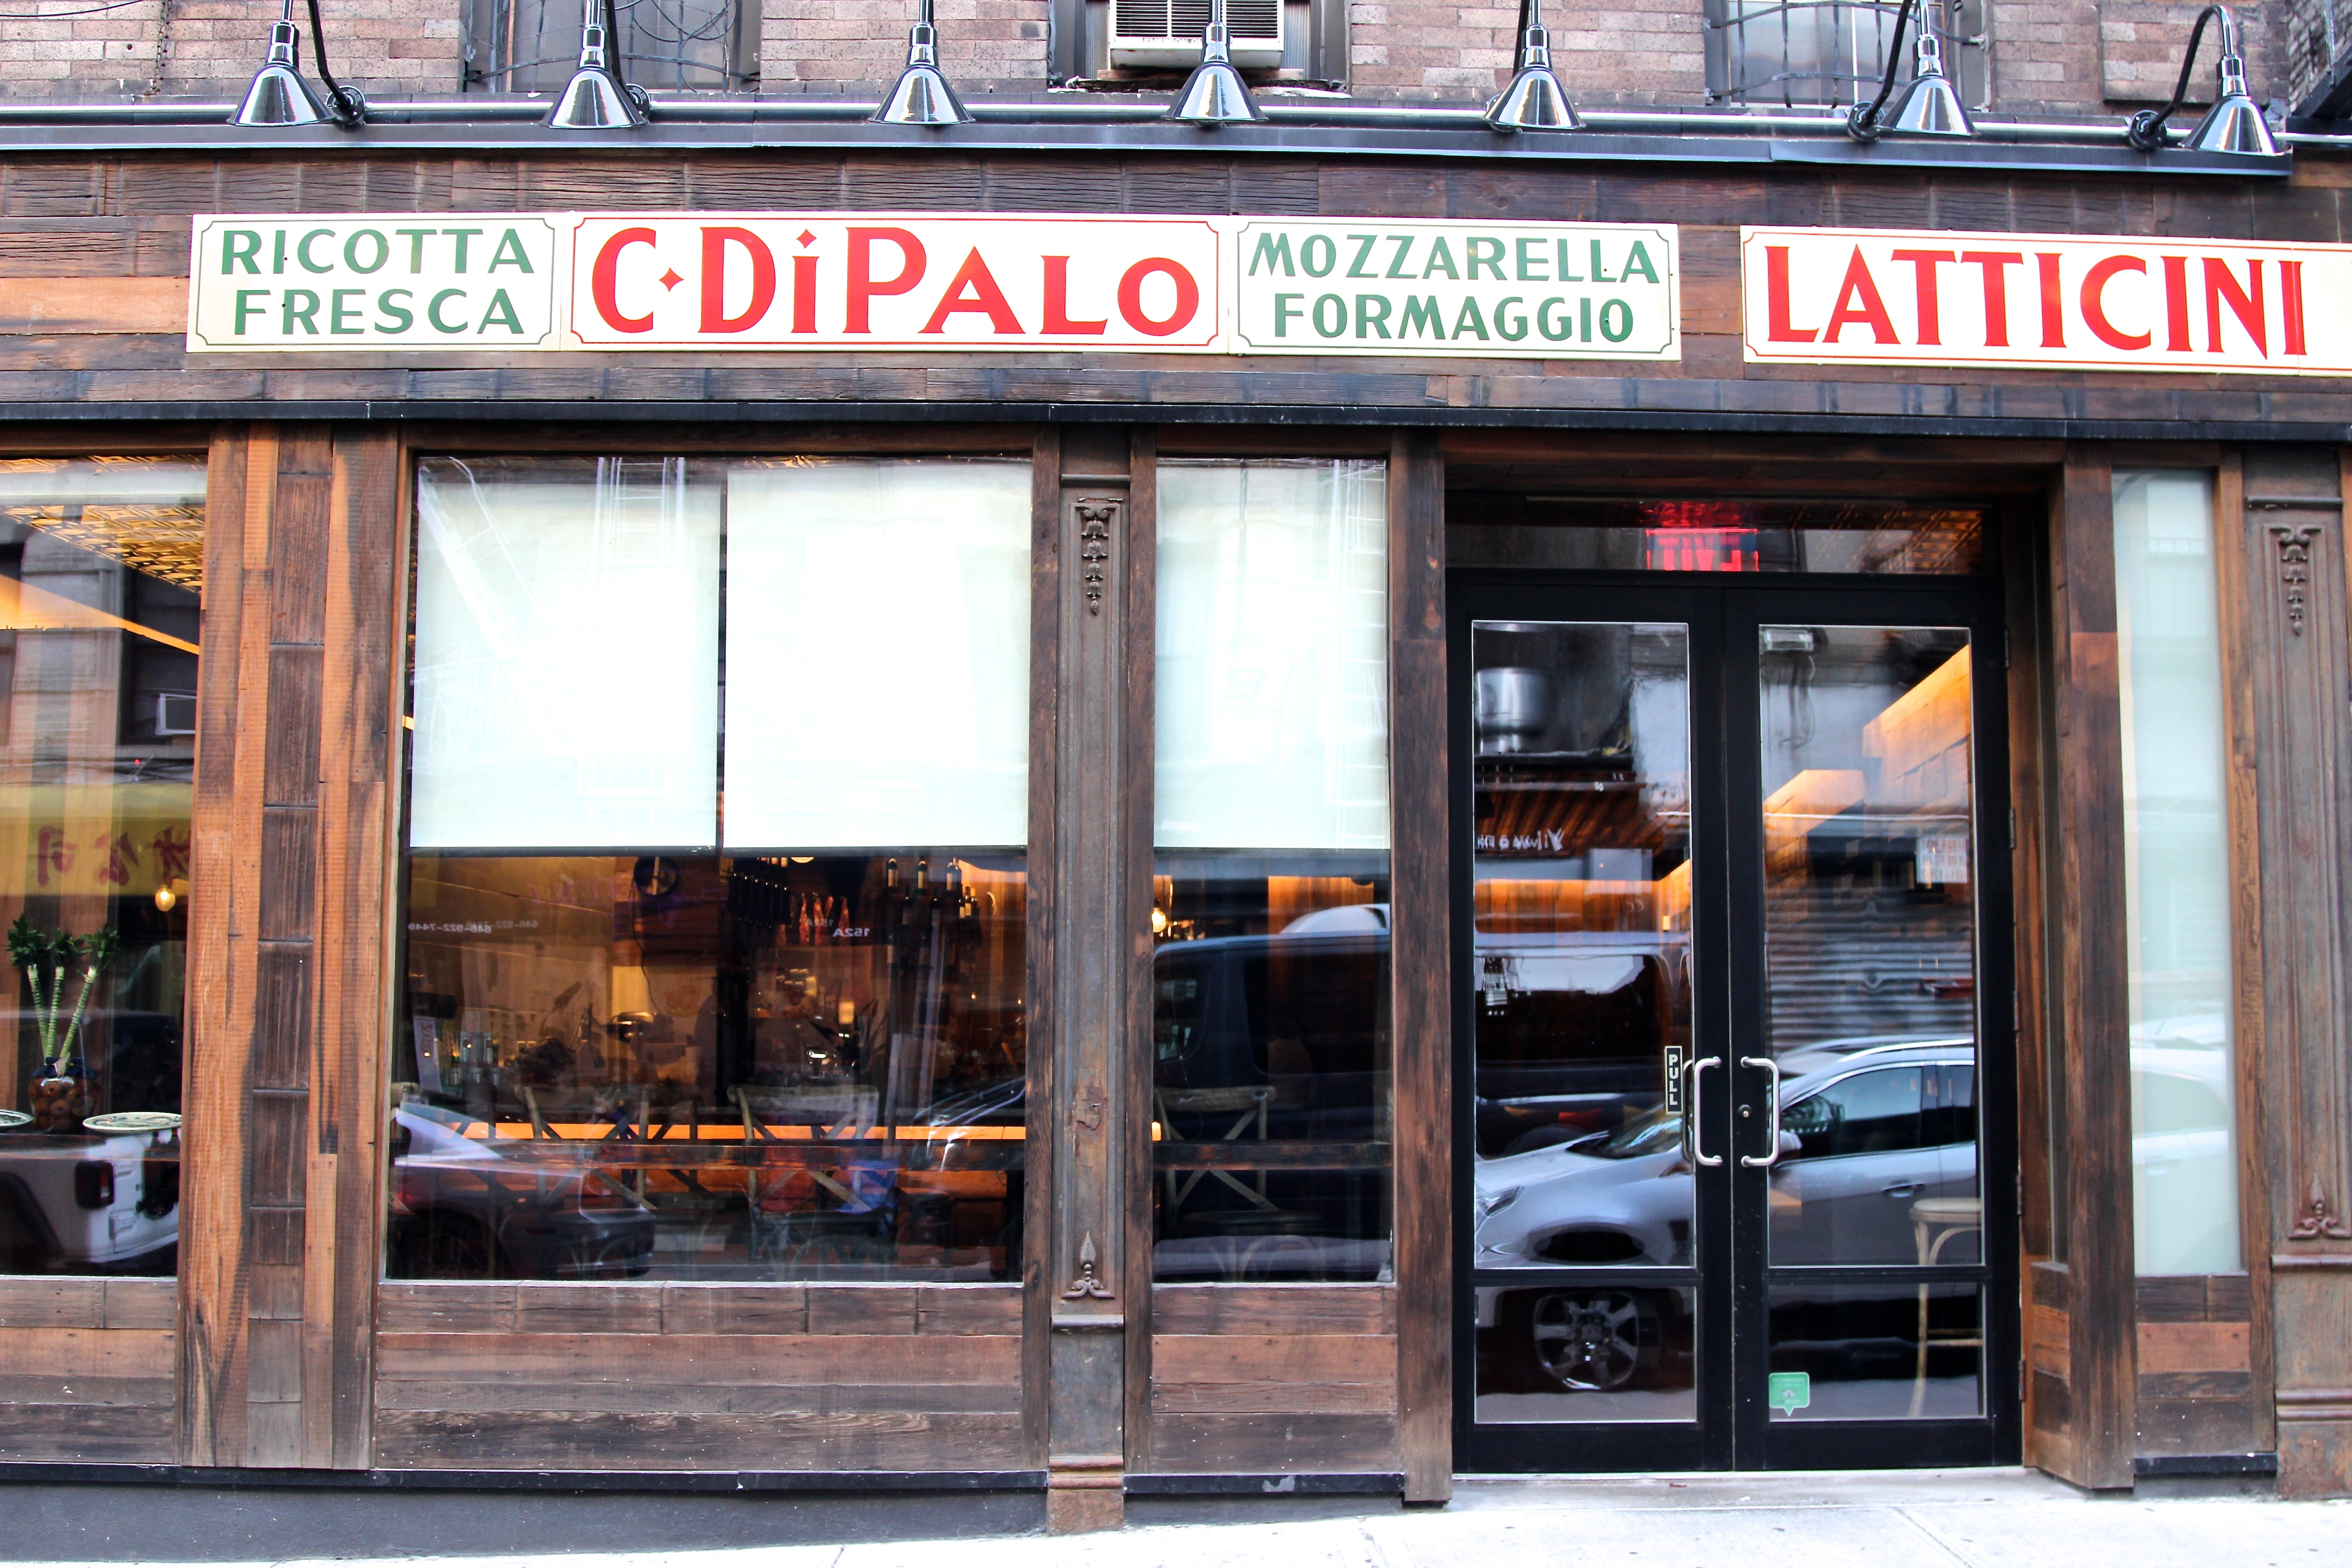 109-Year-Old Little Italy Cheese Shop Di Palo's Now Has a Wine Bar Next Door